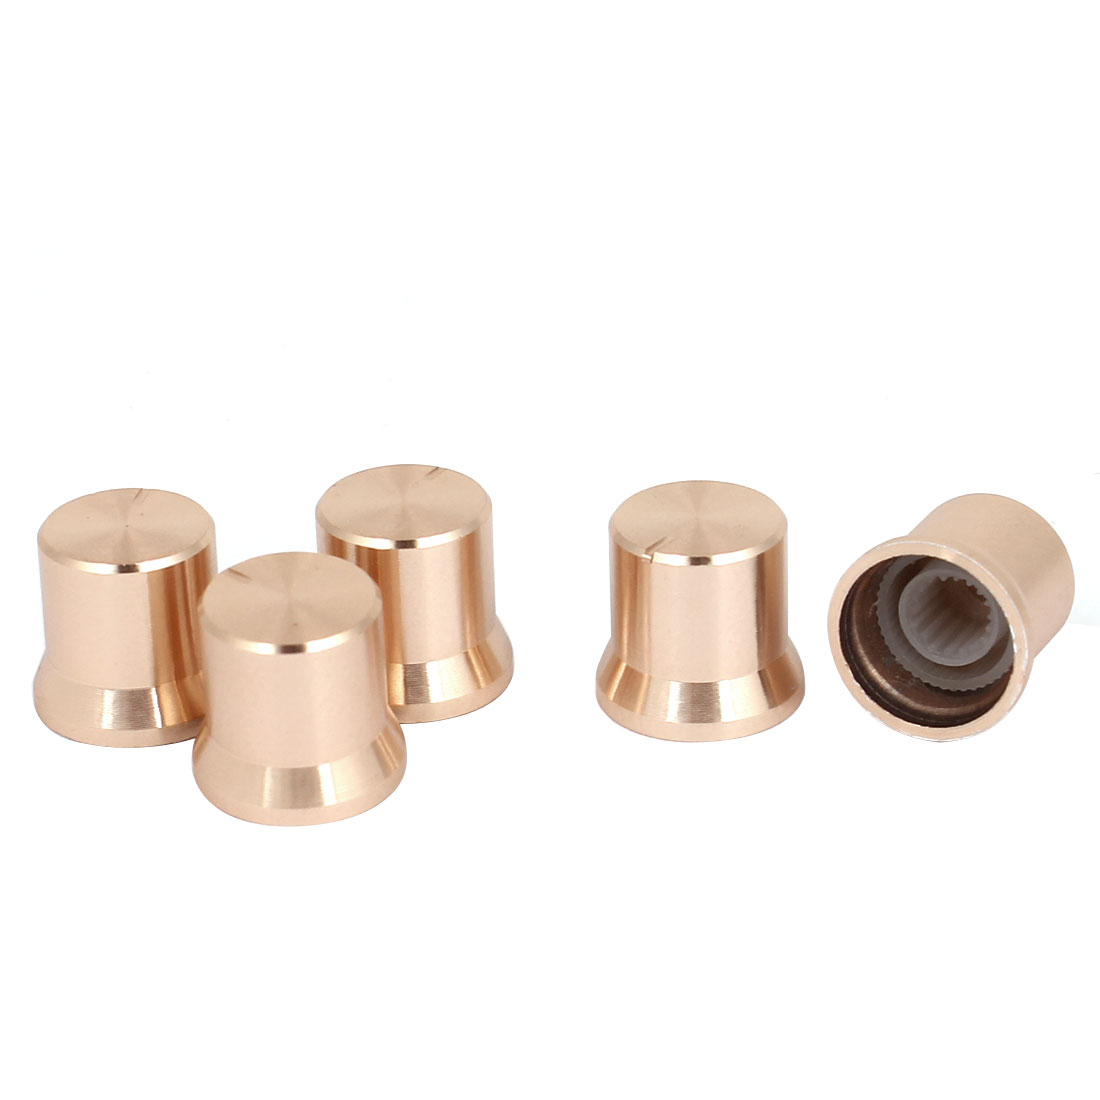 5pcs 15x13.5mm Gold Tone Rotary Potentiometer Control Volume Knobs Cap